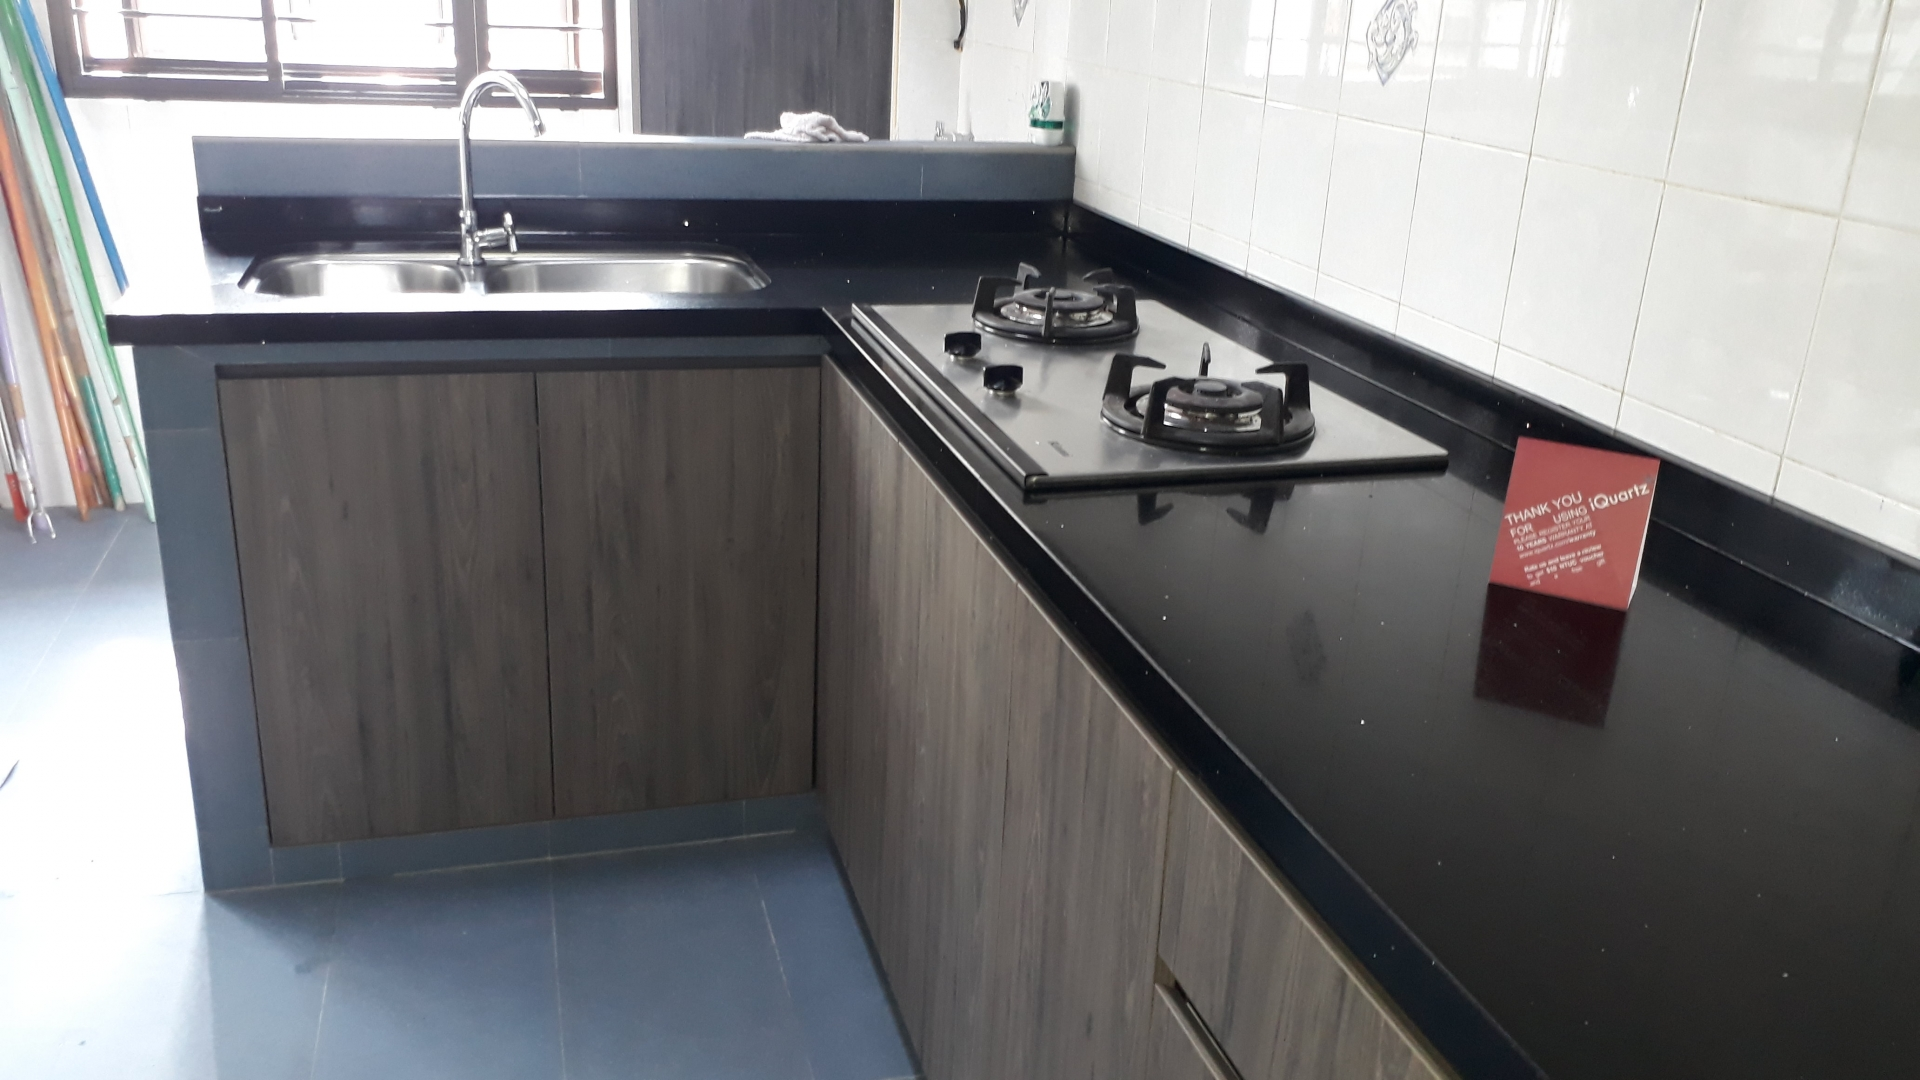 Singapore blk 196 rivervale drive 2nd august 2018 113310 am samantha said the kitchen table top was installed on 28 july 2018 nicely done